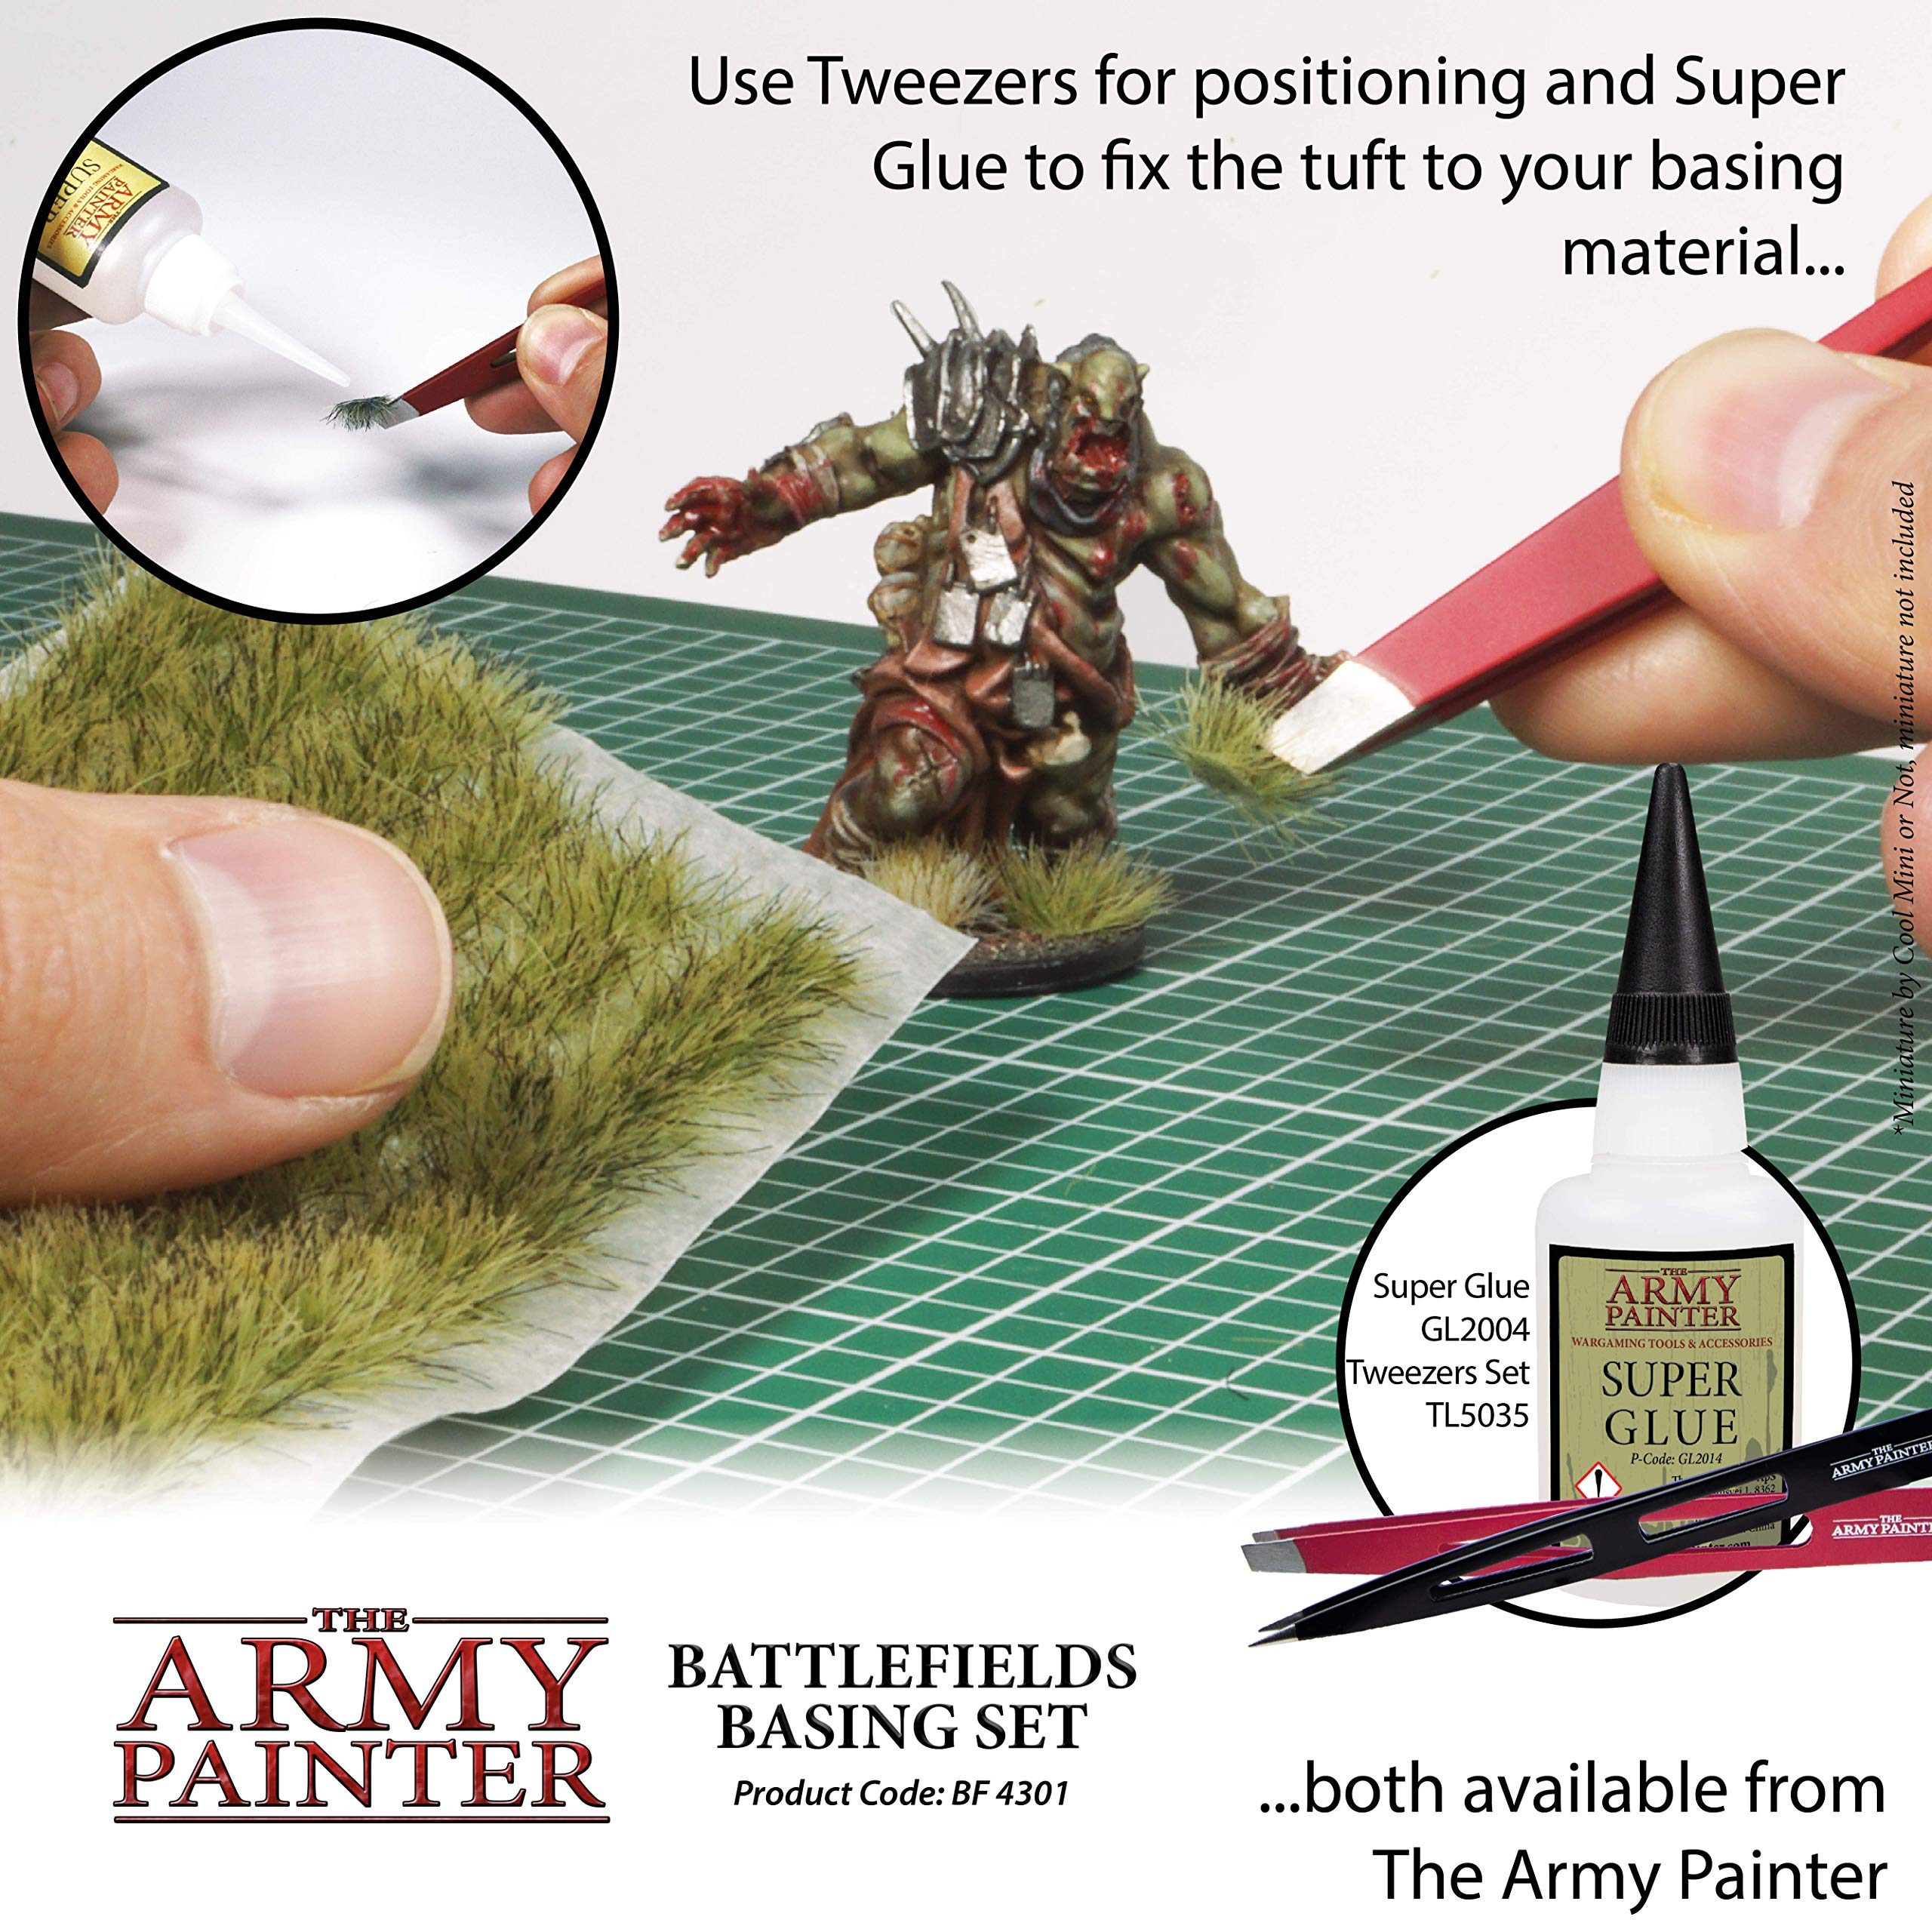 The Army Painter Battlefields Basing Set - Wargamers Terrain Model Kit for Miniature Bases and Dioramas with Landscape Rocks, Scenic Sand, Static Grass, Grass Tufts and Free Basing Glue by The Army Painter (Image #6)